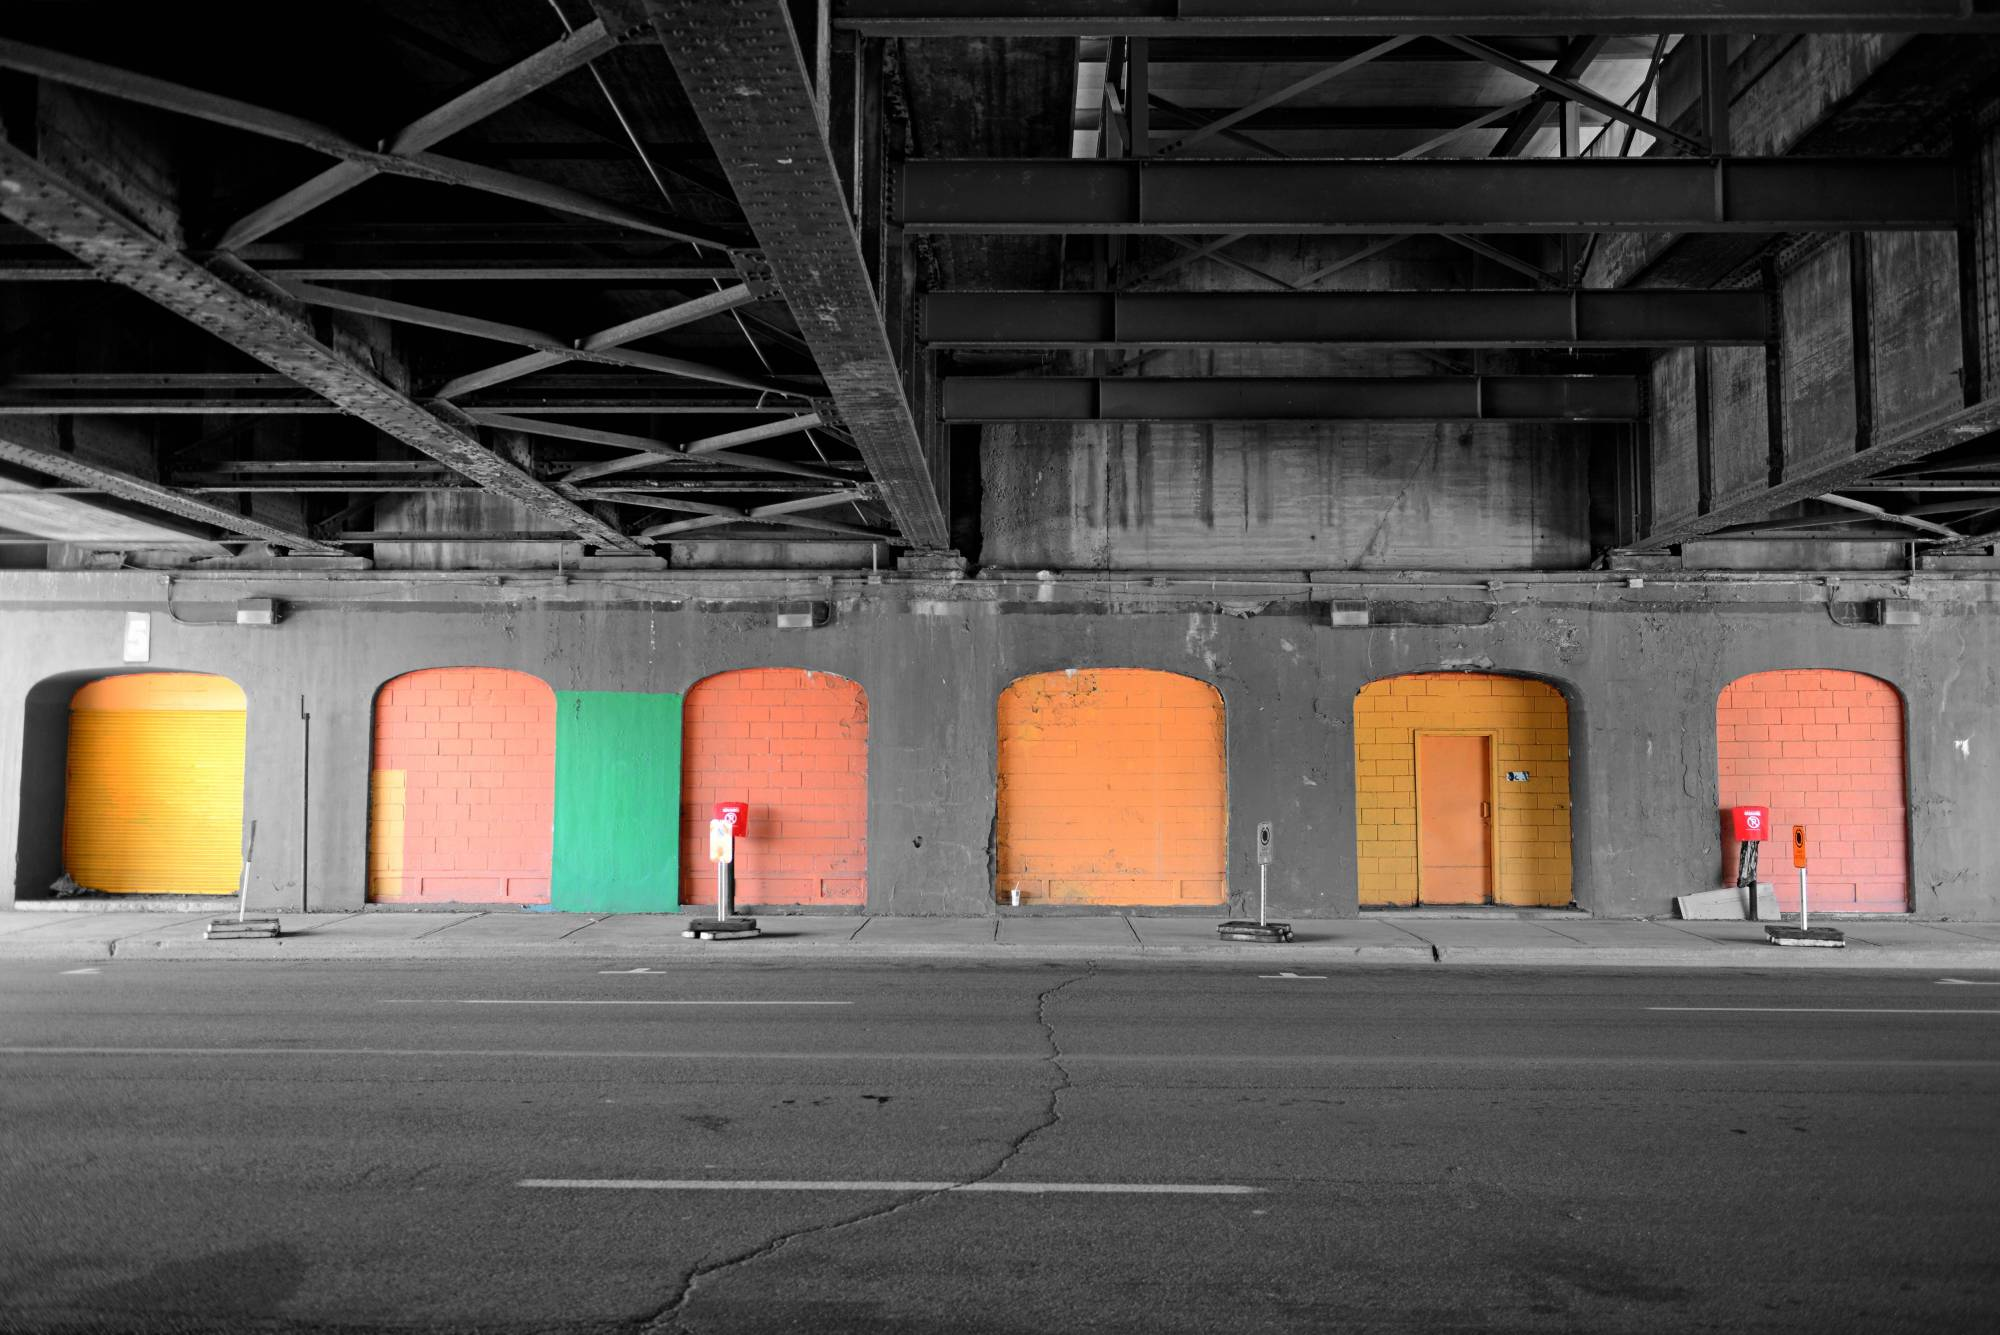 VP 6108470, COLORSPOT UNDER A BRIDGE MONTREAL, CANADA. Fotograf: Hady Khandani